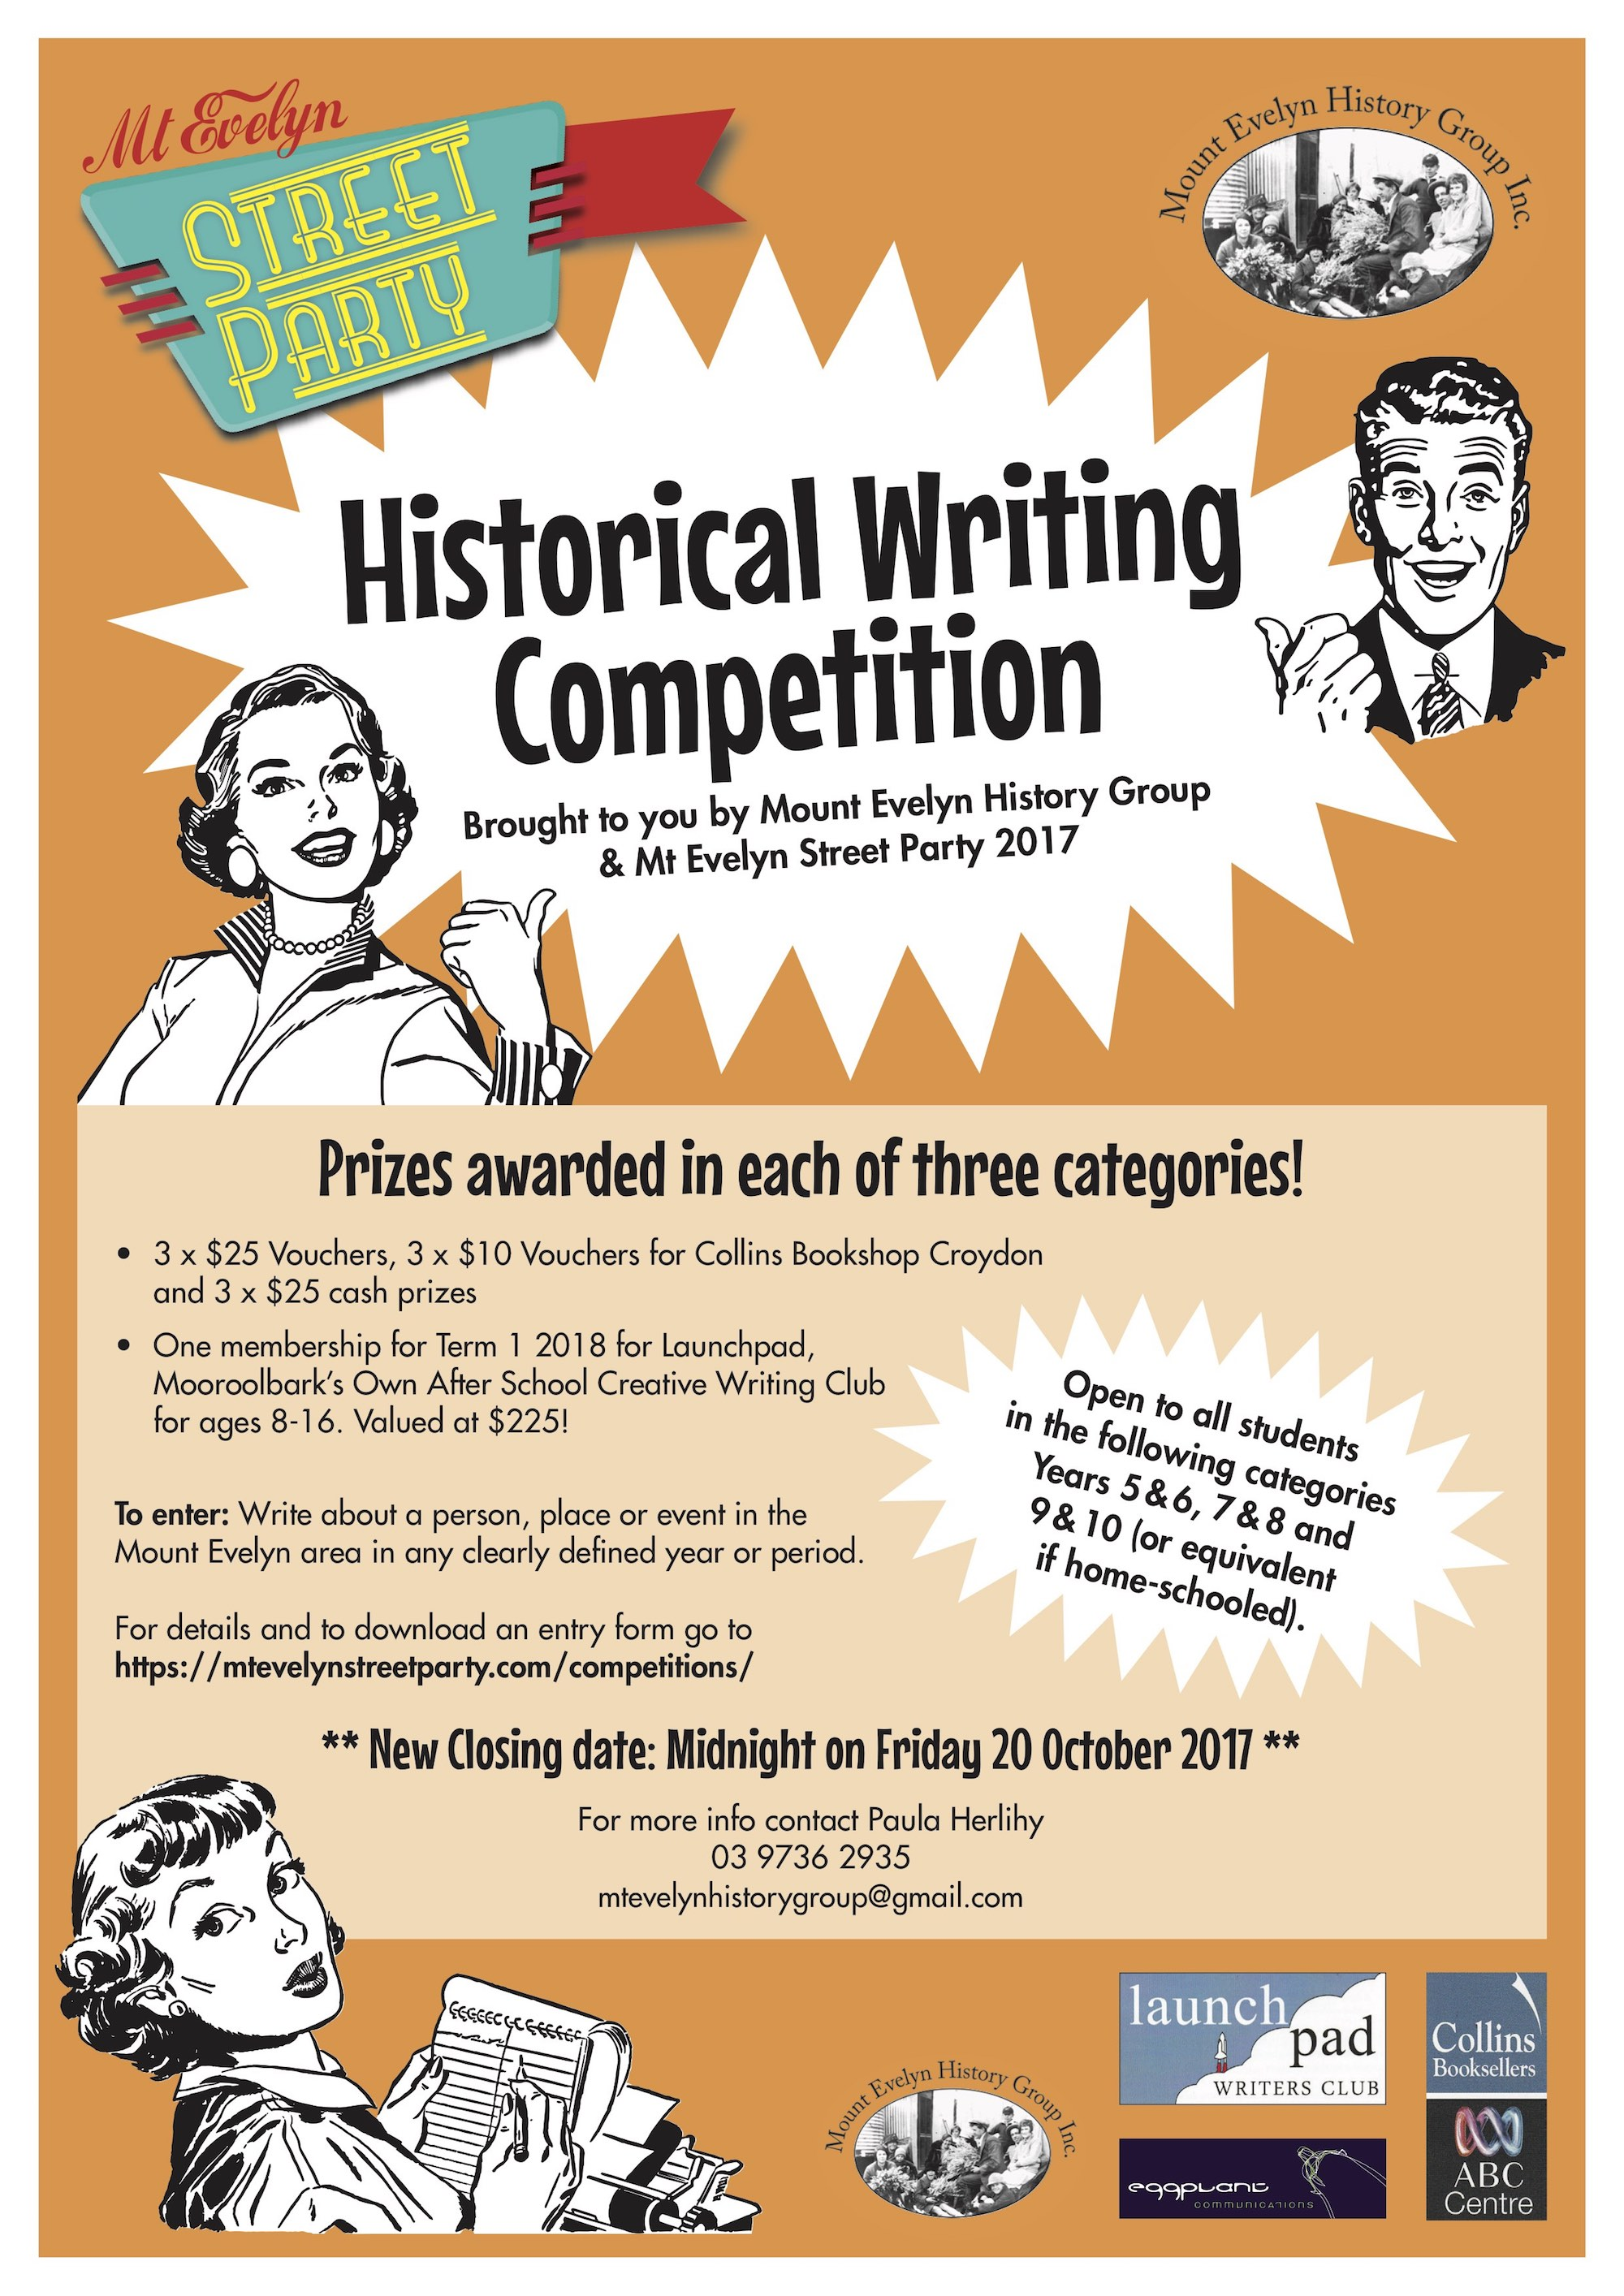 Mt Evelyn Street Party Historical Writing Competition Poster 2017